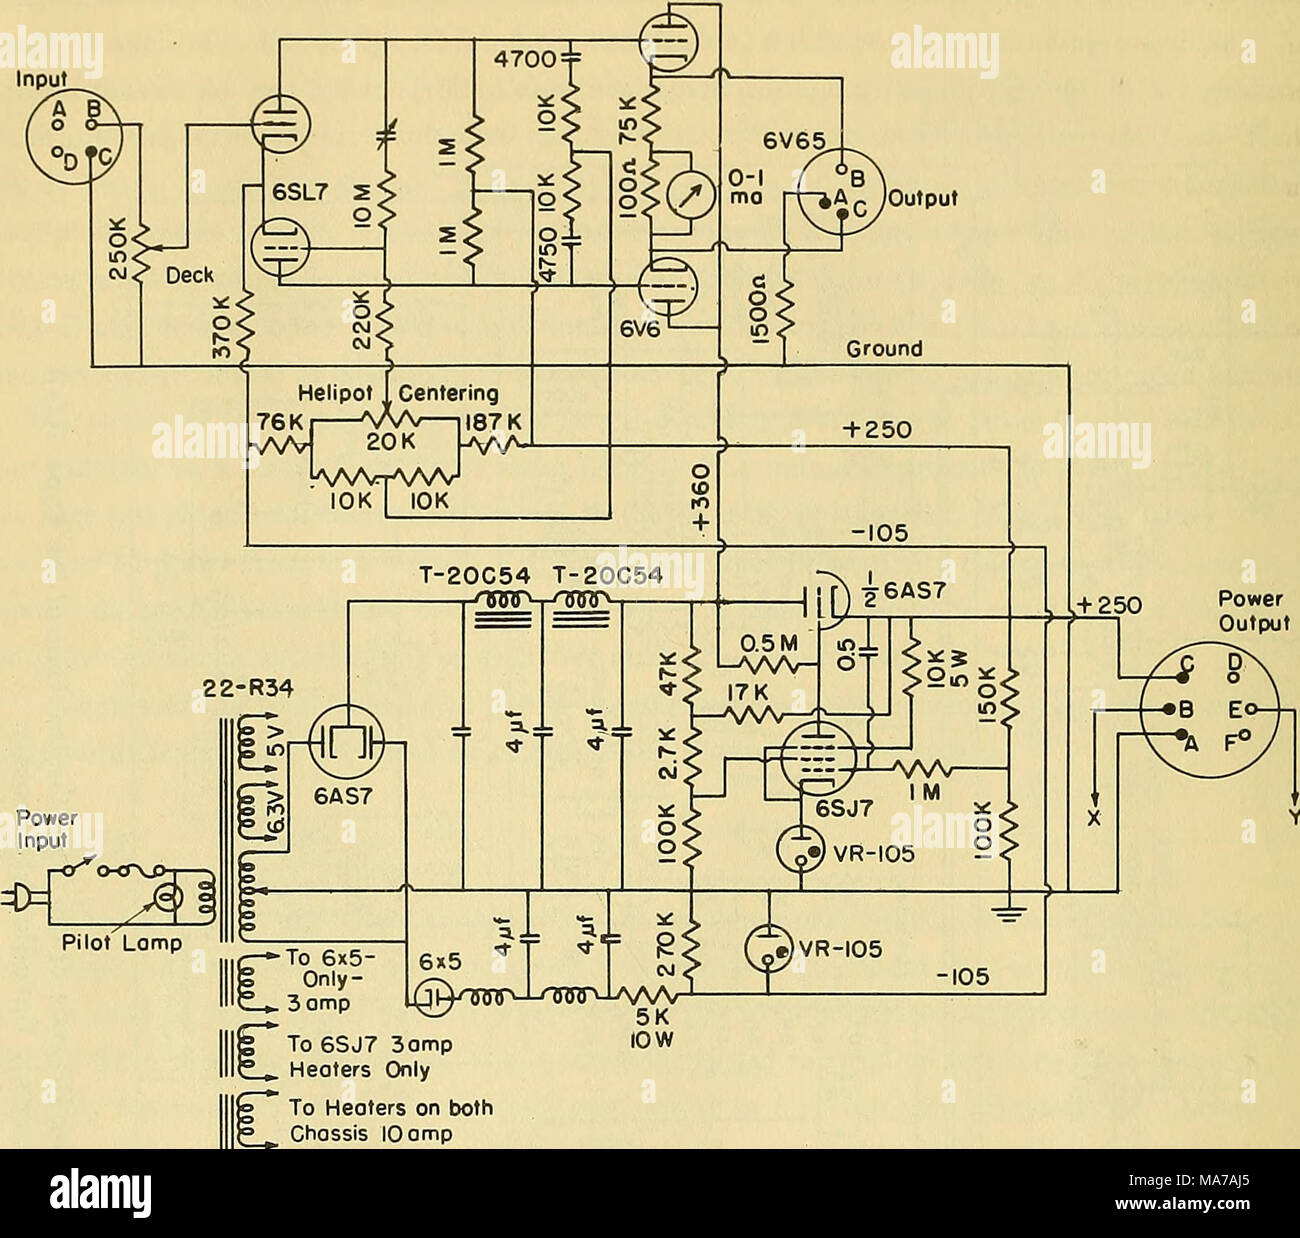 hight resolution of an electronic wave height measureing apparatus to 6sj7 3ampto 6sj7 3amp heaters only to heaters on both ctiassis 10 amp figure 5 schematic wiring diagram of